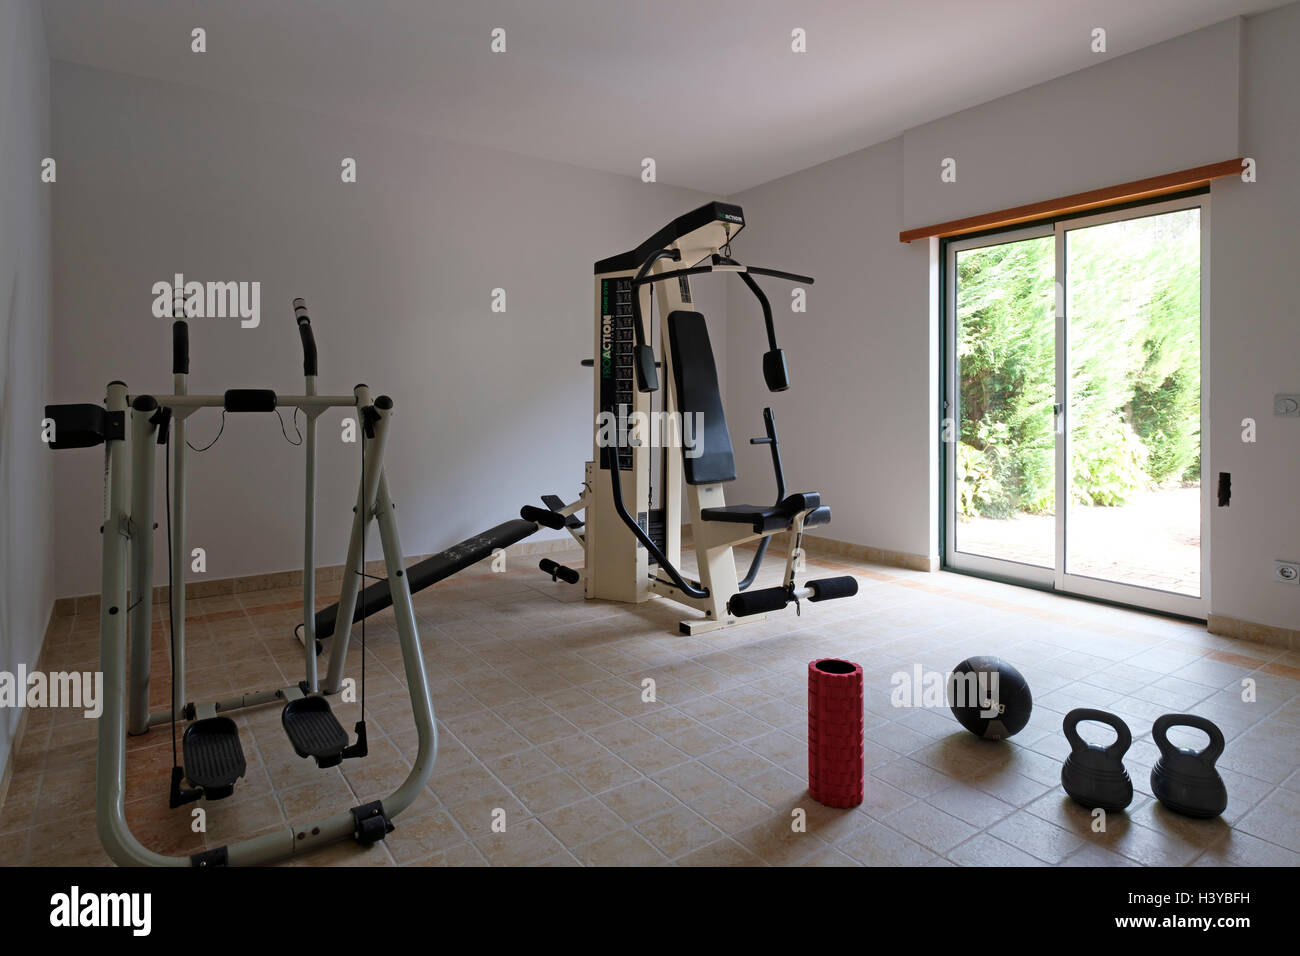 Exercise machines and kettlebells on a home gym - Stock Image